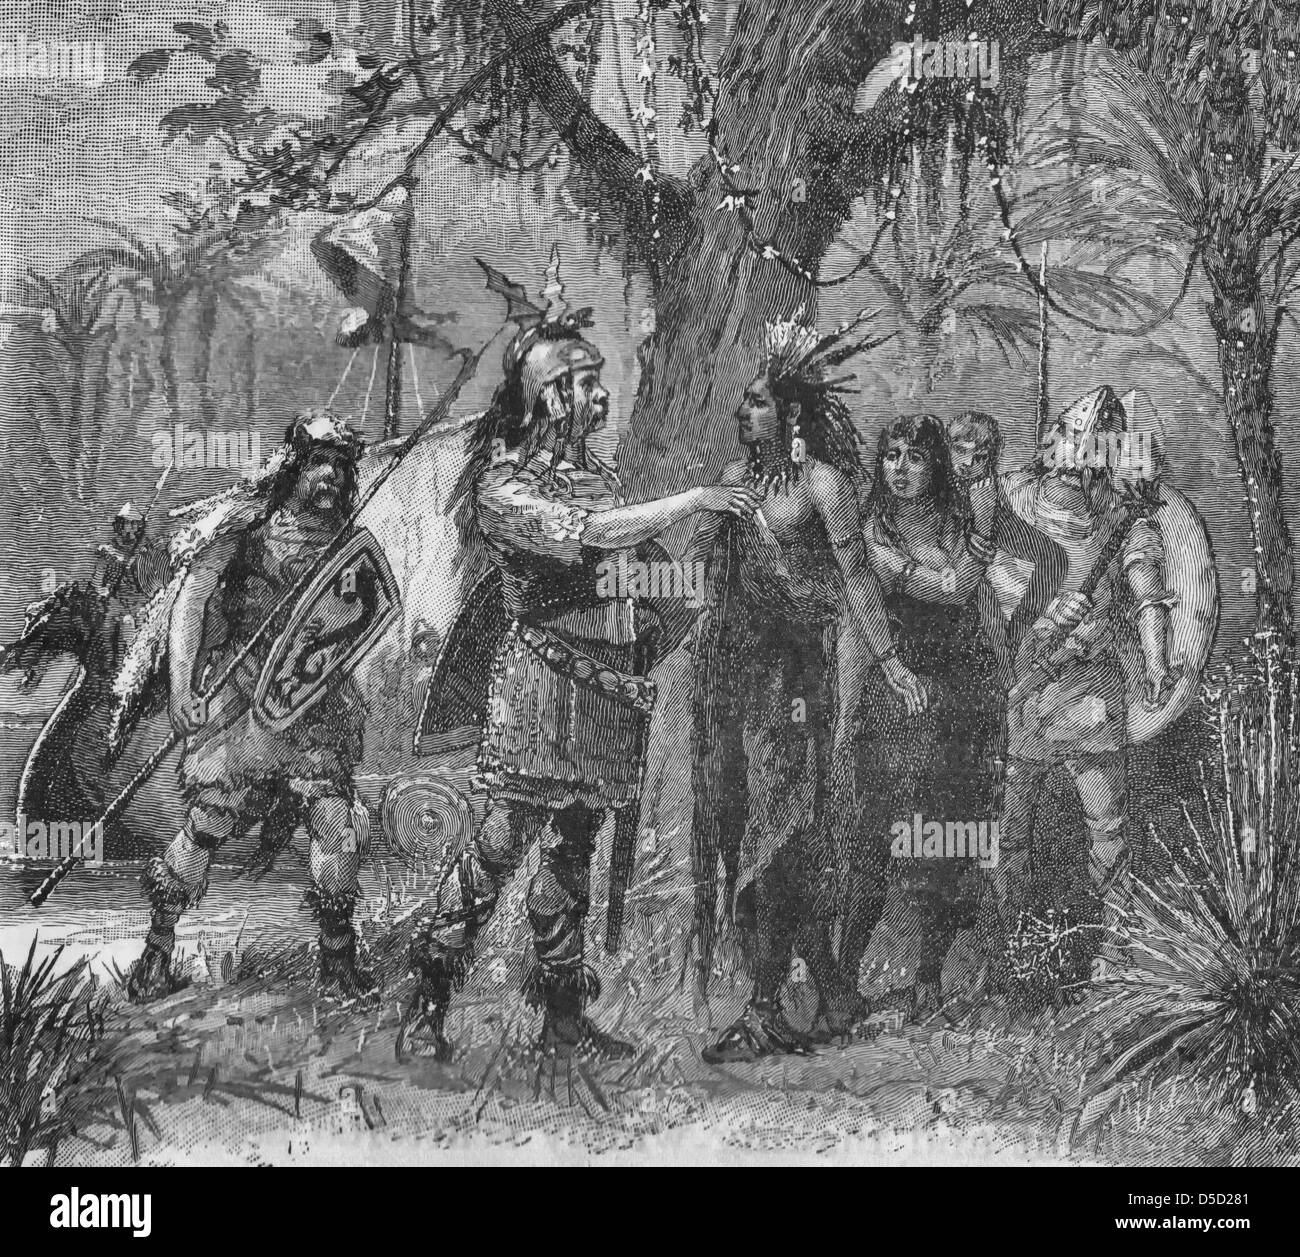 Vikings meeting with American Indians in pre colonial America - Stock Image